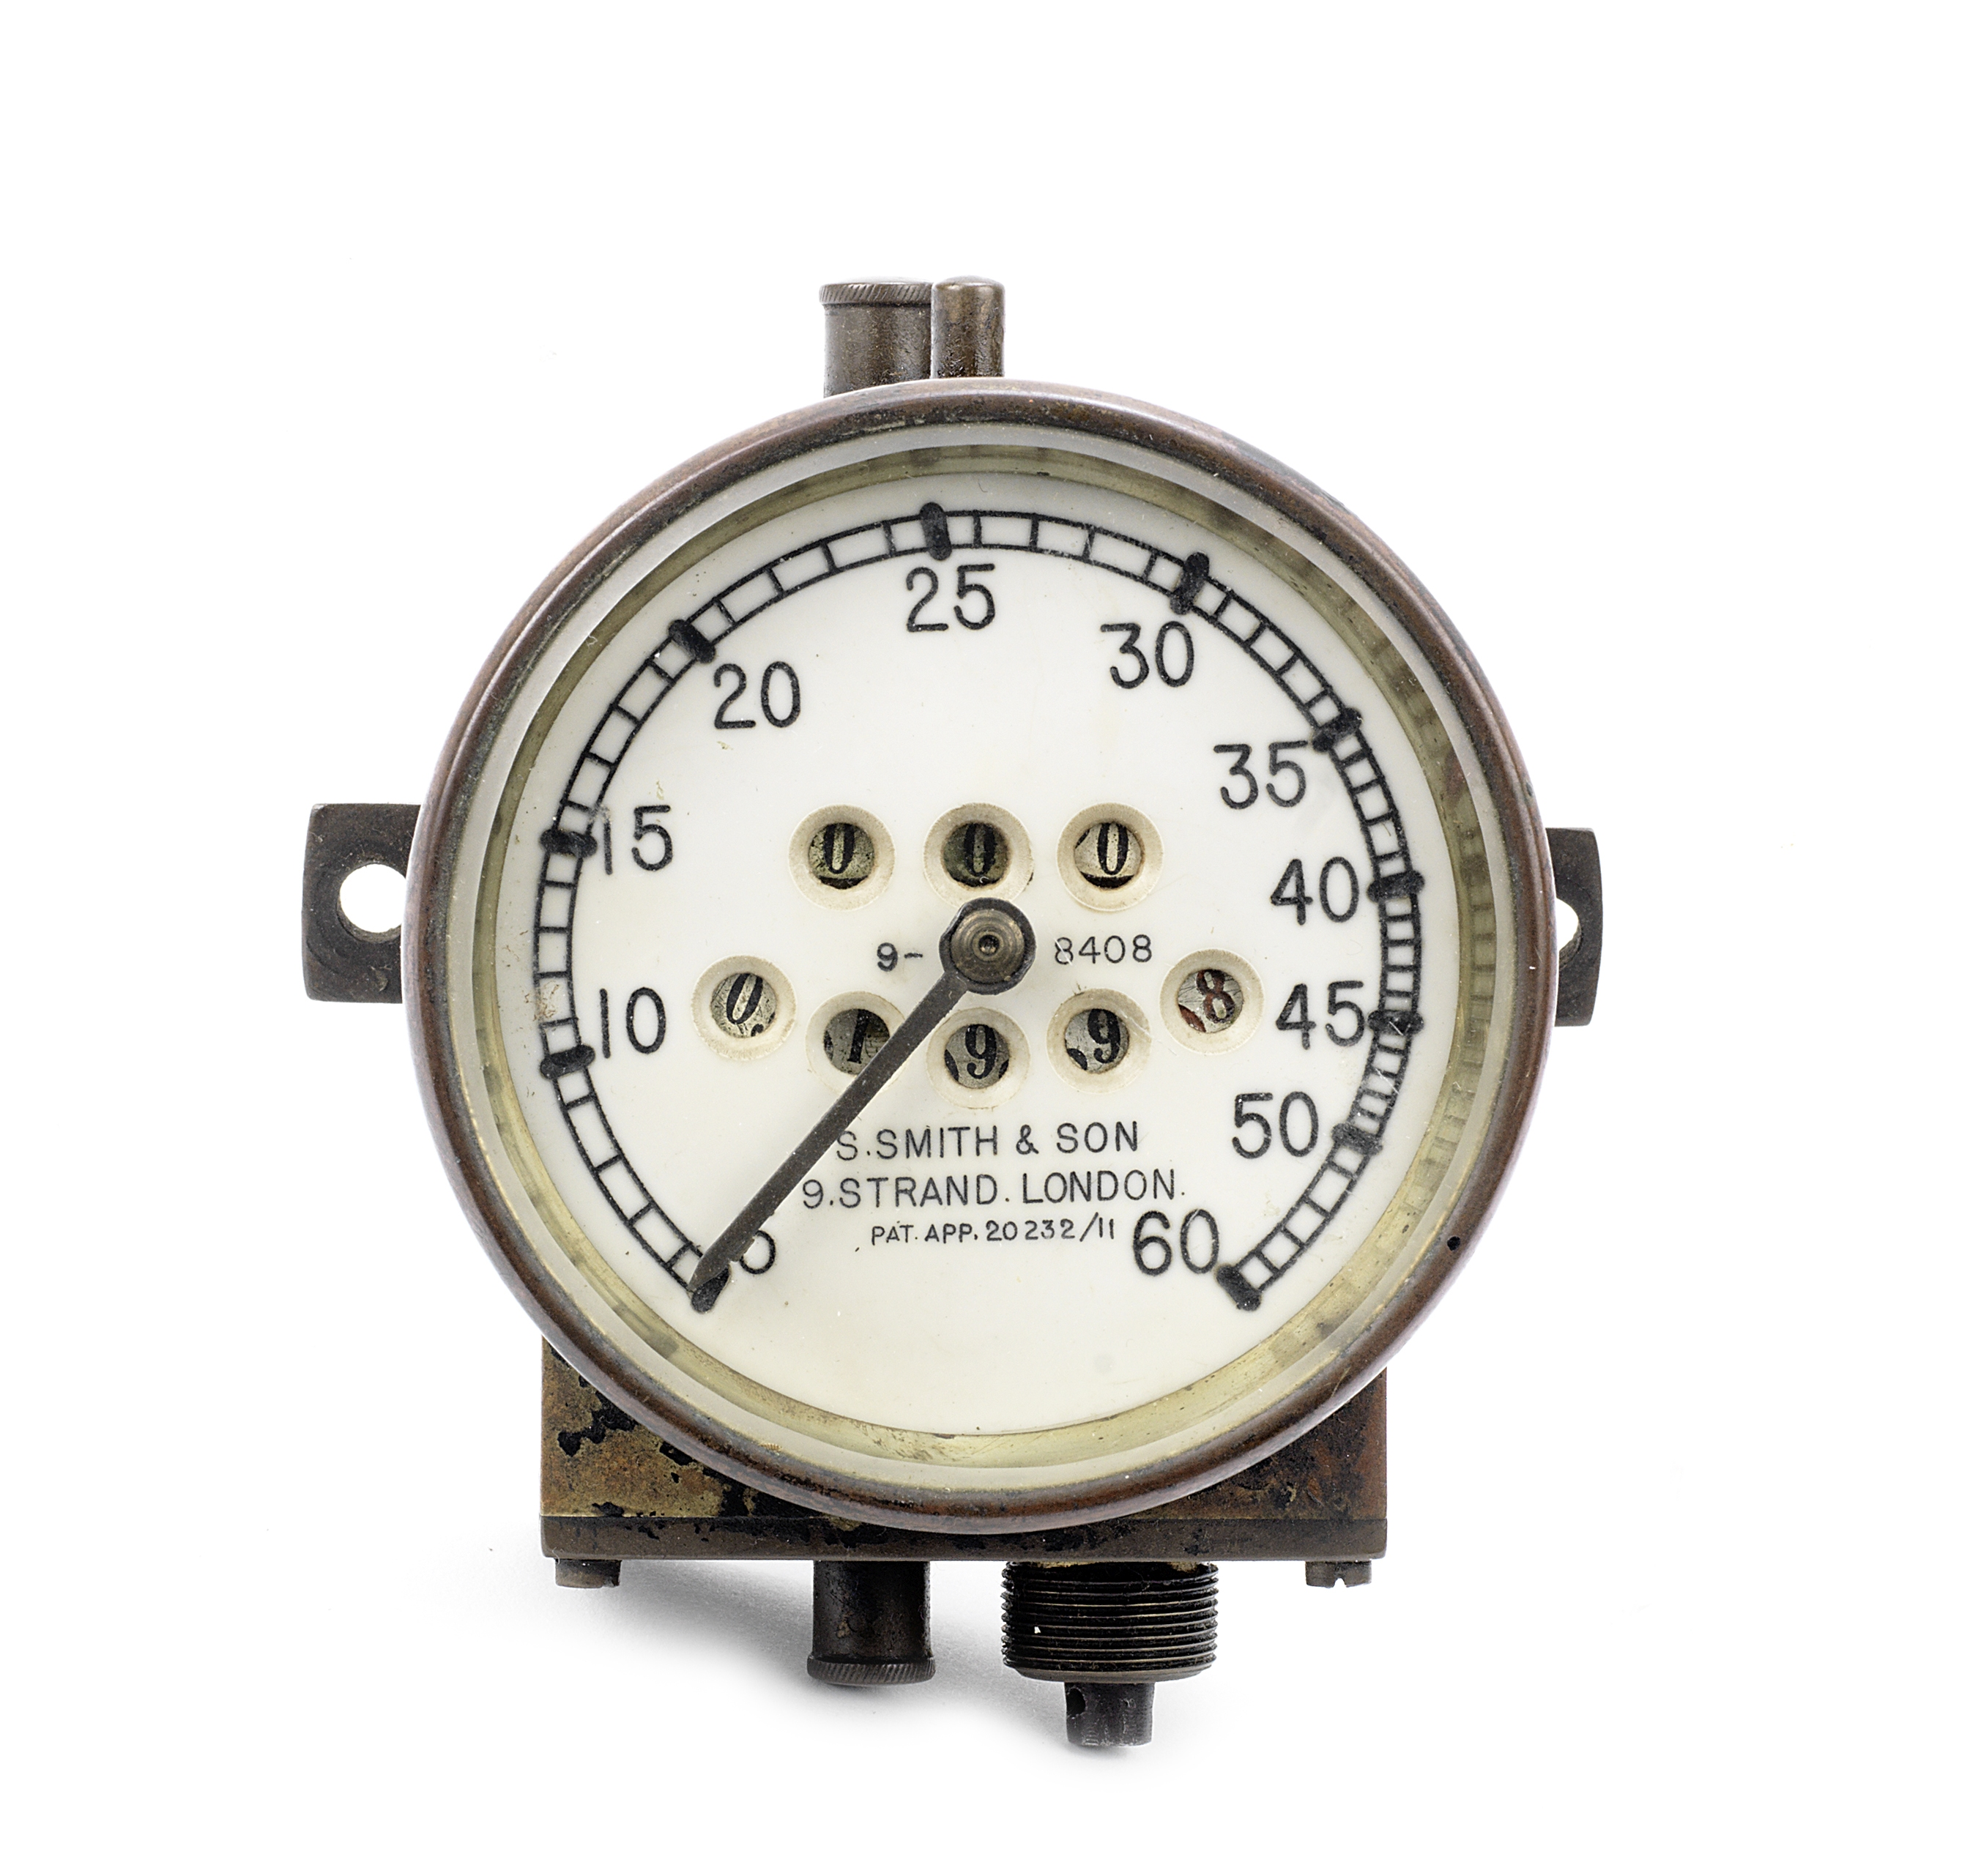 A Speedometer by S.Smith & Son, British, patented 1911,